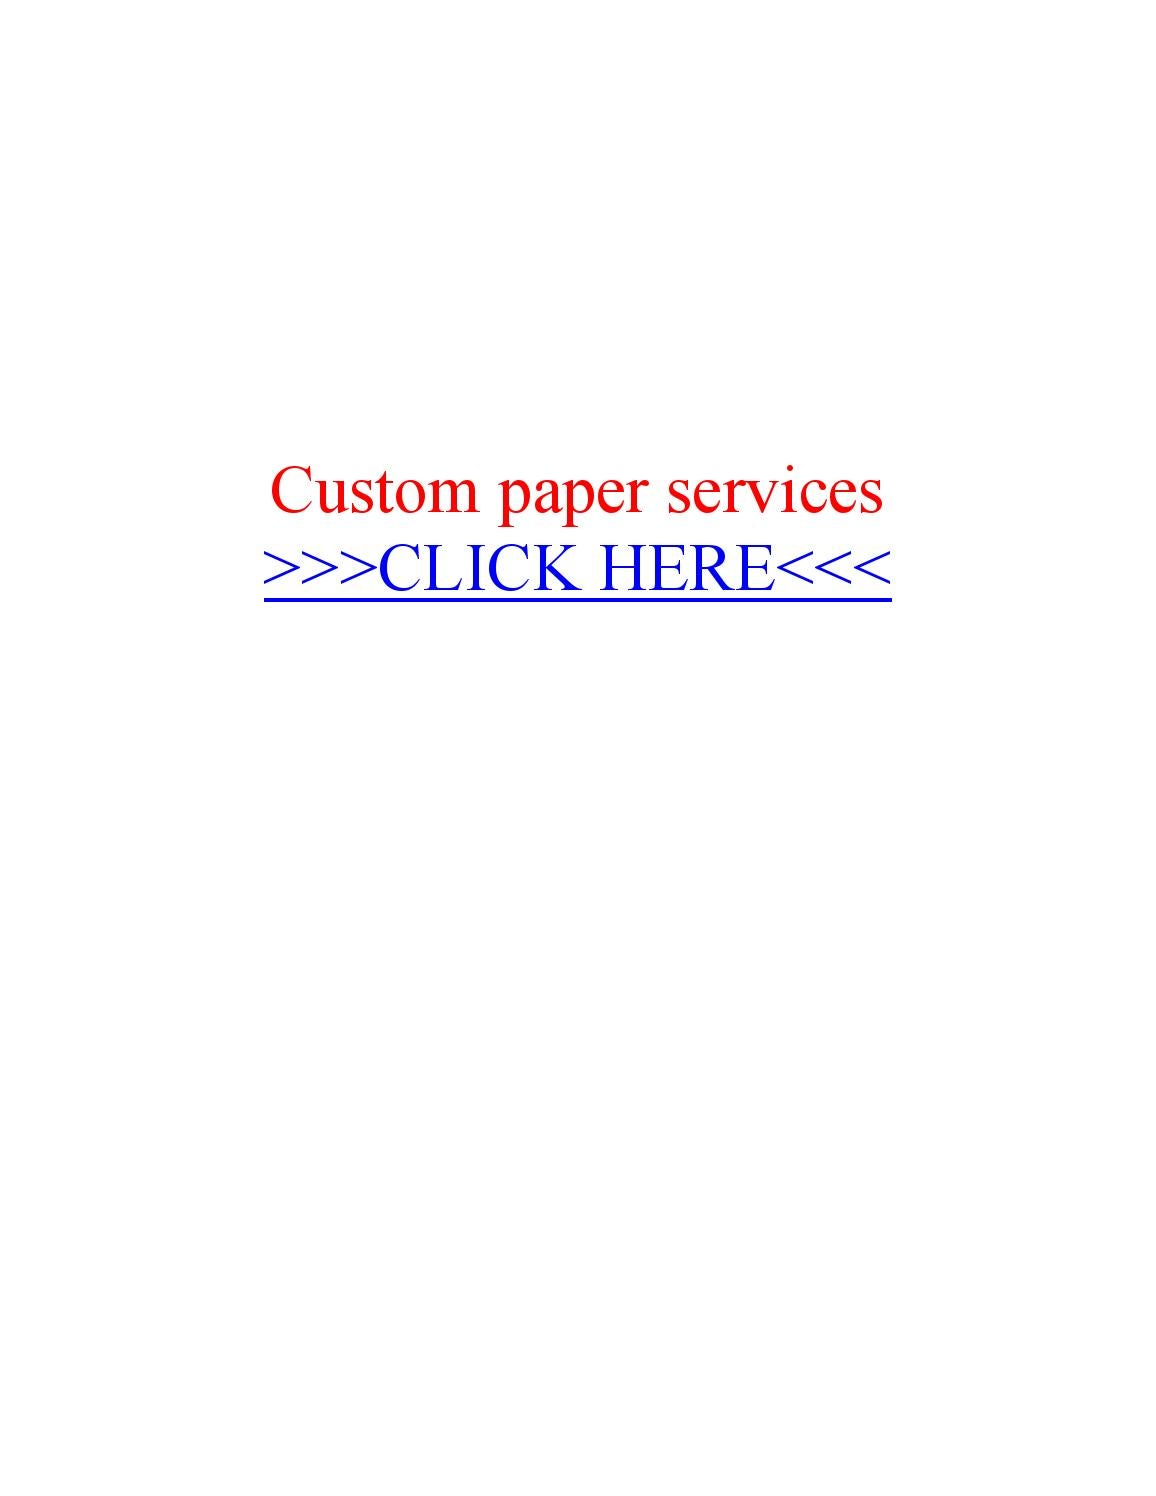 Custom paper services knoxville tn